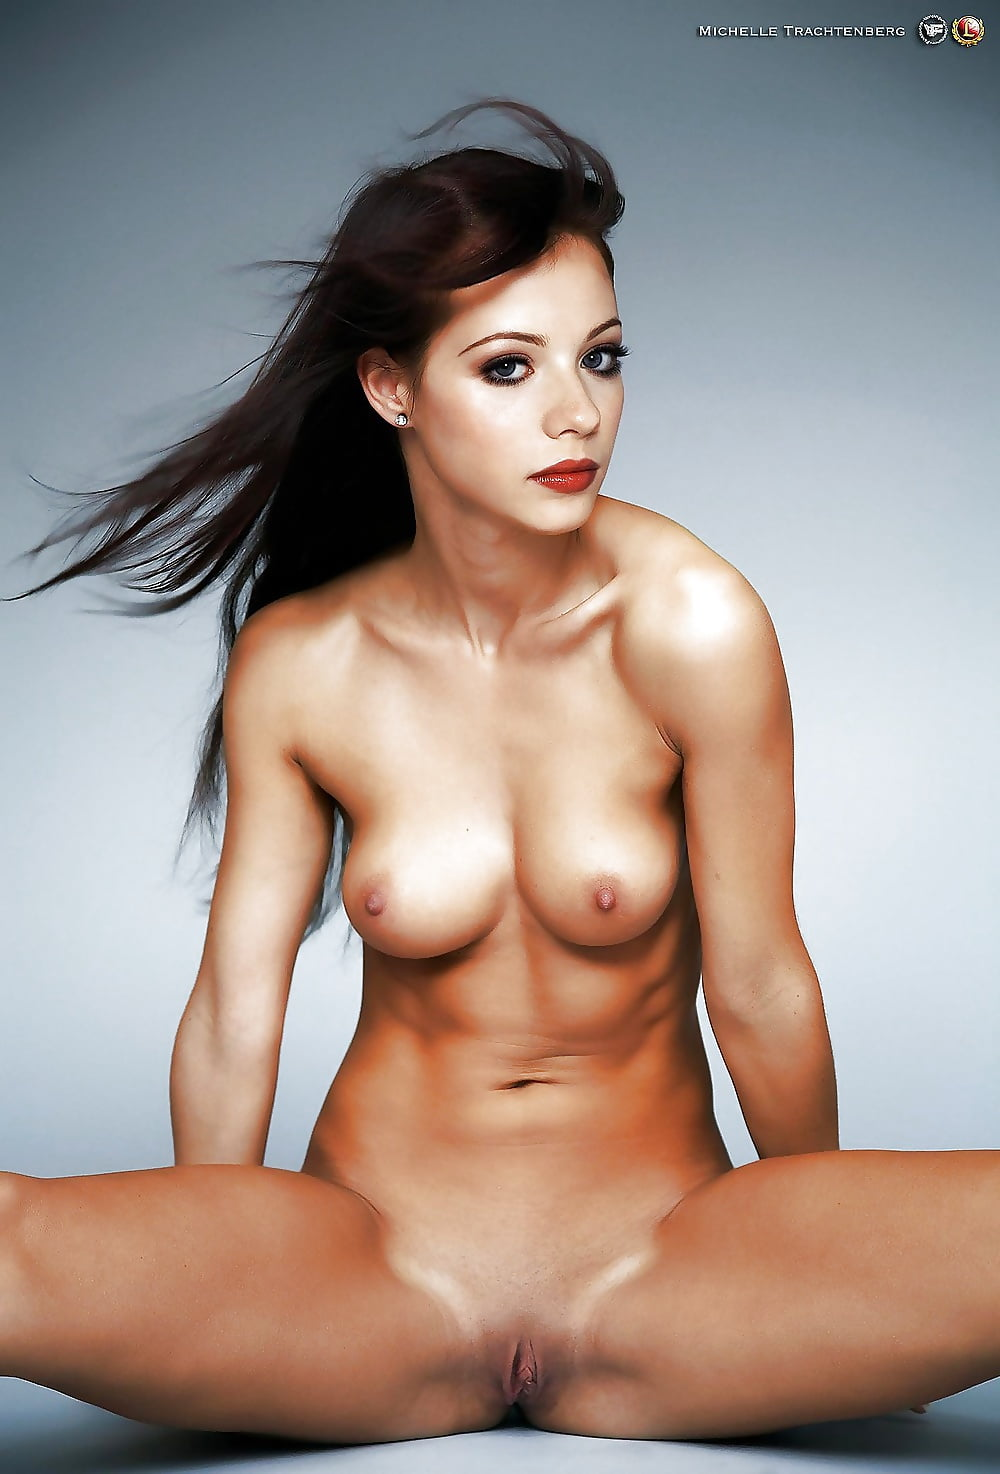 Michelle Trachtenberg Nudes Fakes 46 Pics Xhamster